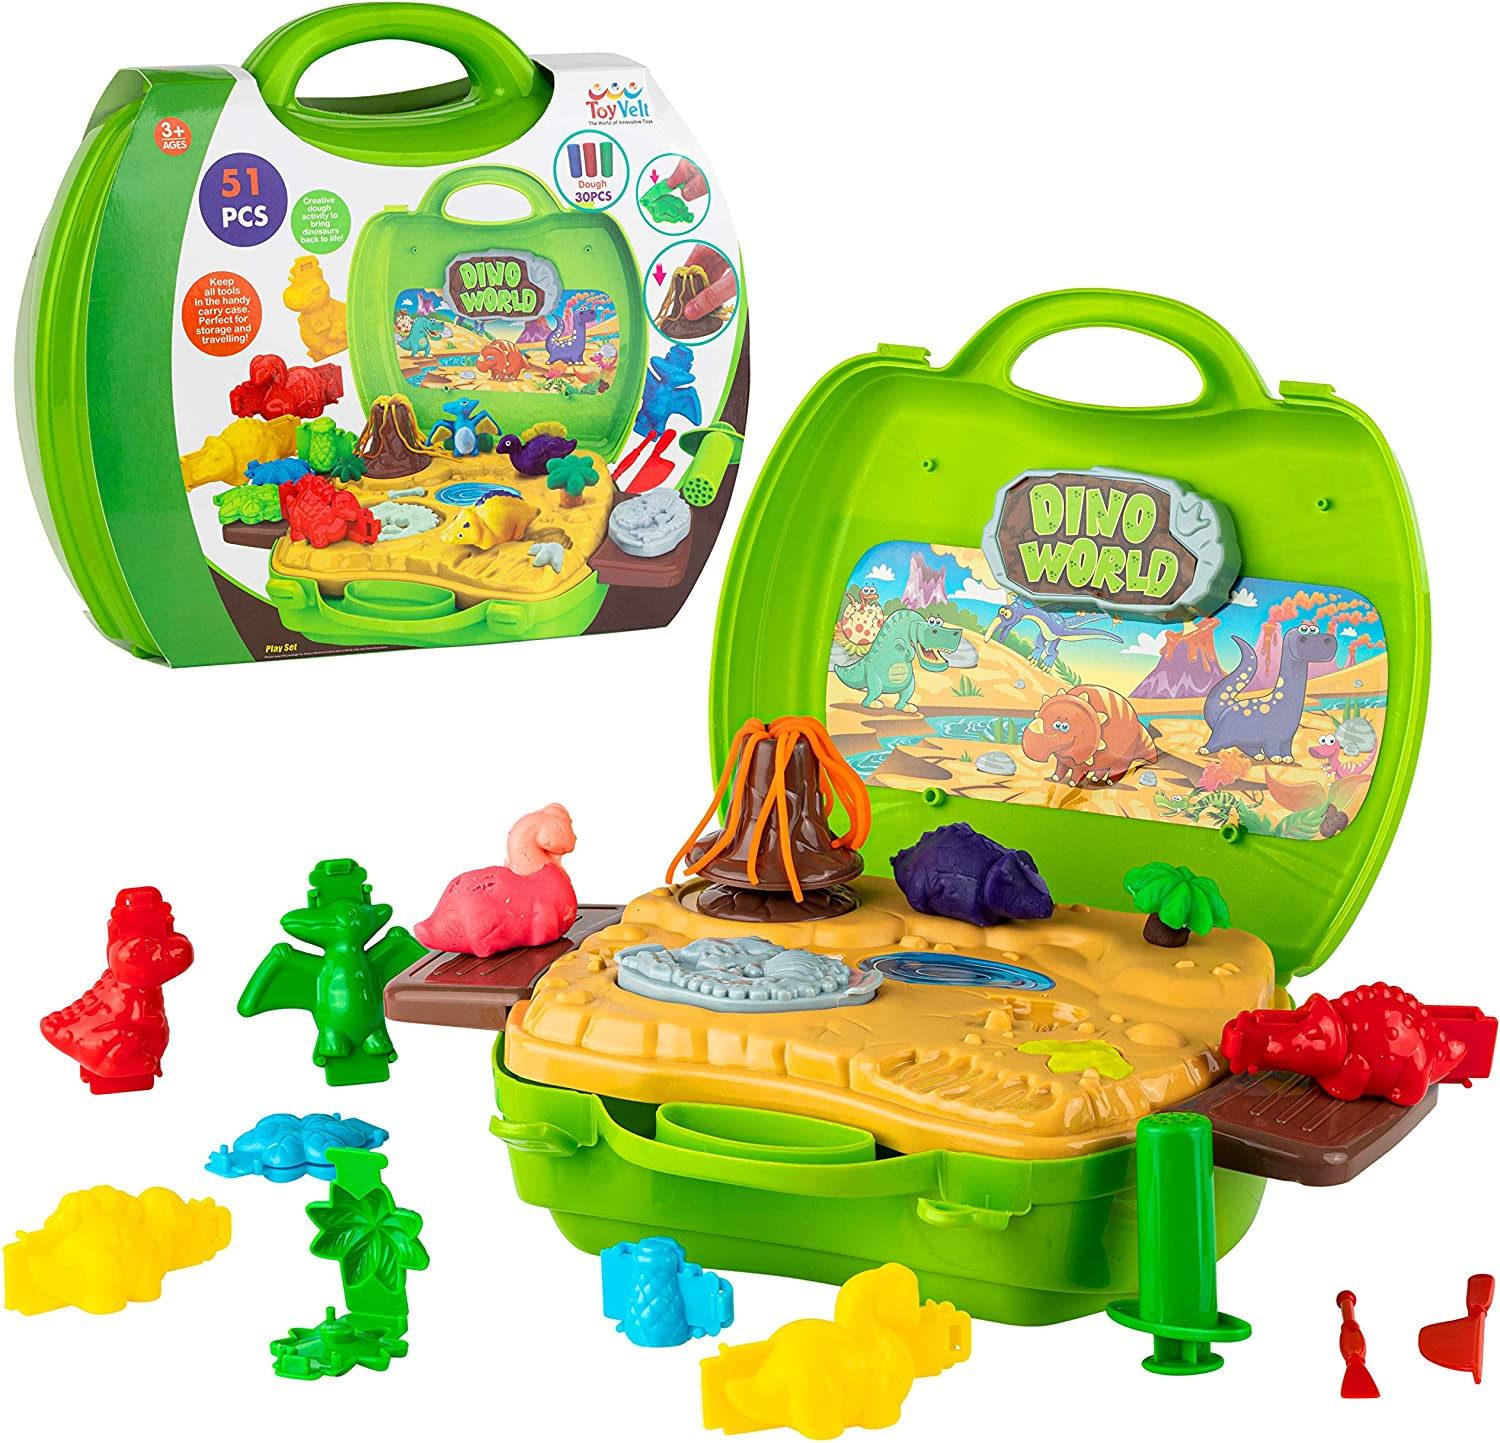 Toyvelt 2021 Clay Dinosaur Toys Set for Kids - Magic Modeling Clay 51 Pieces - Safe & Non Toxic 3D Dinosaur Figures for Kids – for Boys and Girls Age 3-12 Years Old -Updated Version